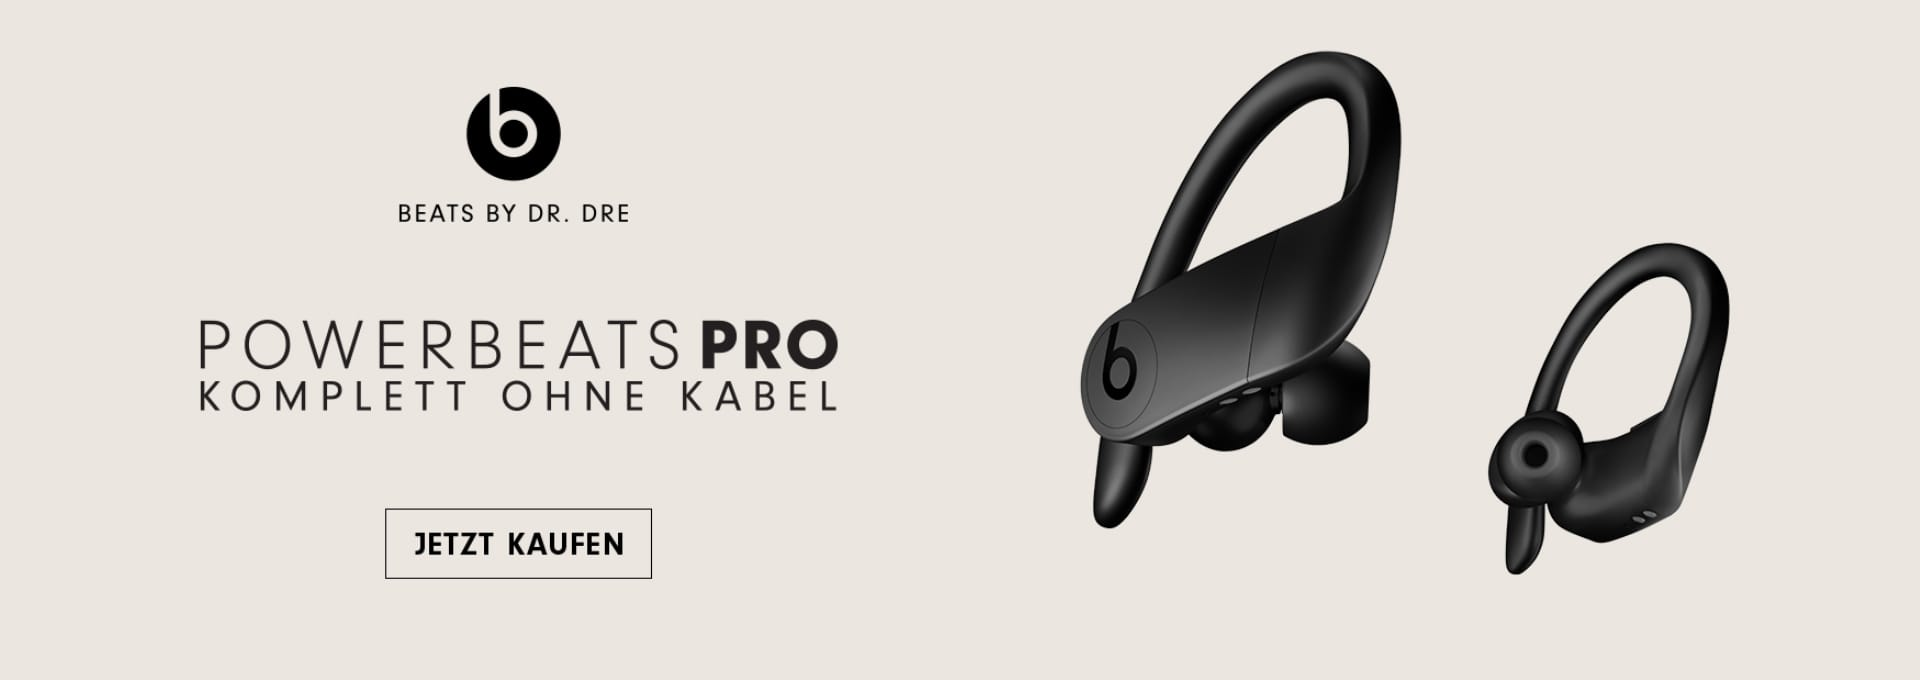 PowerBeats Pro Wireless In-Ear Kopfhöhrer